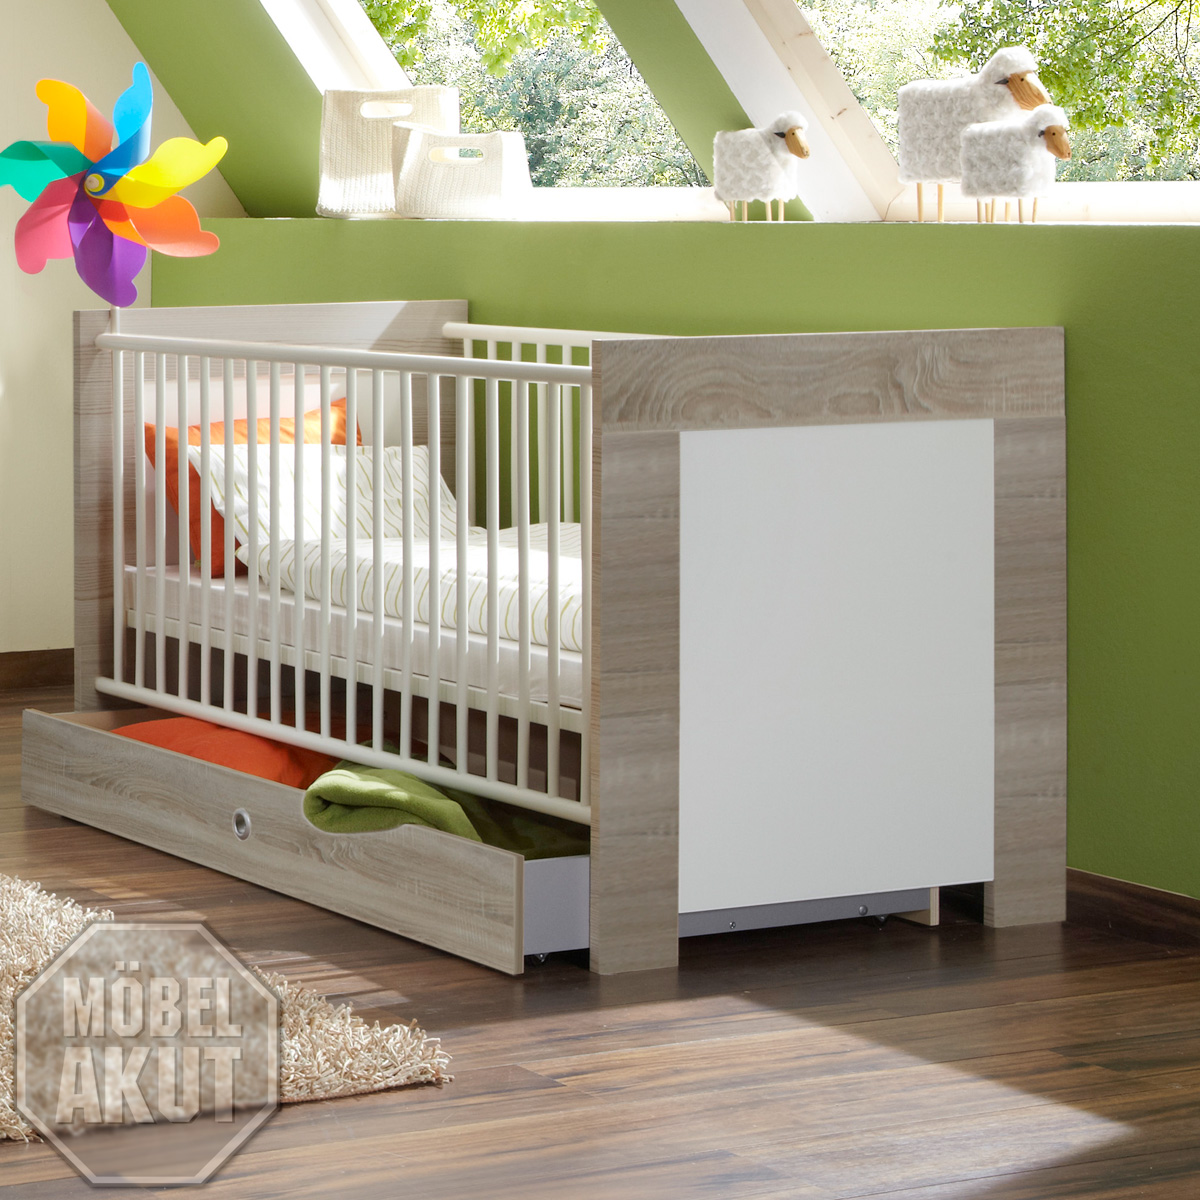 babybett cheria bett kinderbett in sonoma eiche s gerau wei 70x140 ebay. Black Bedroom Furniture Sets. Home Design Ideas